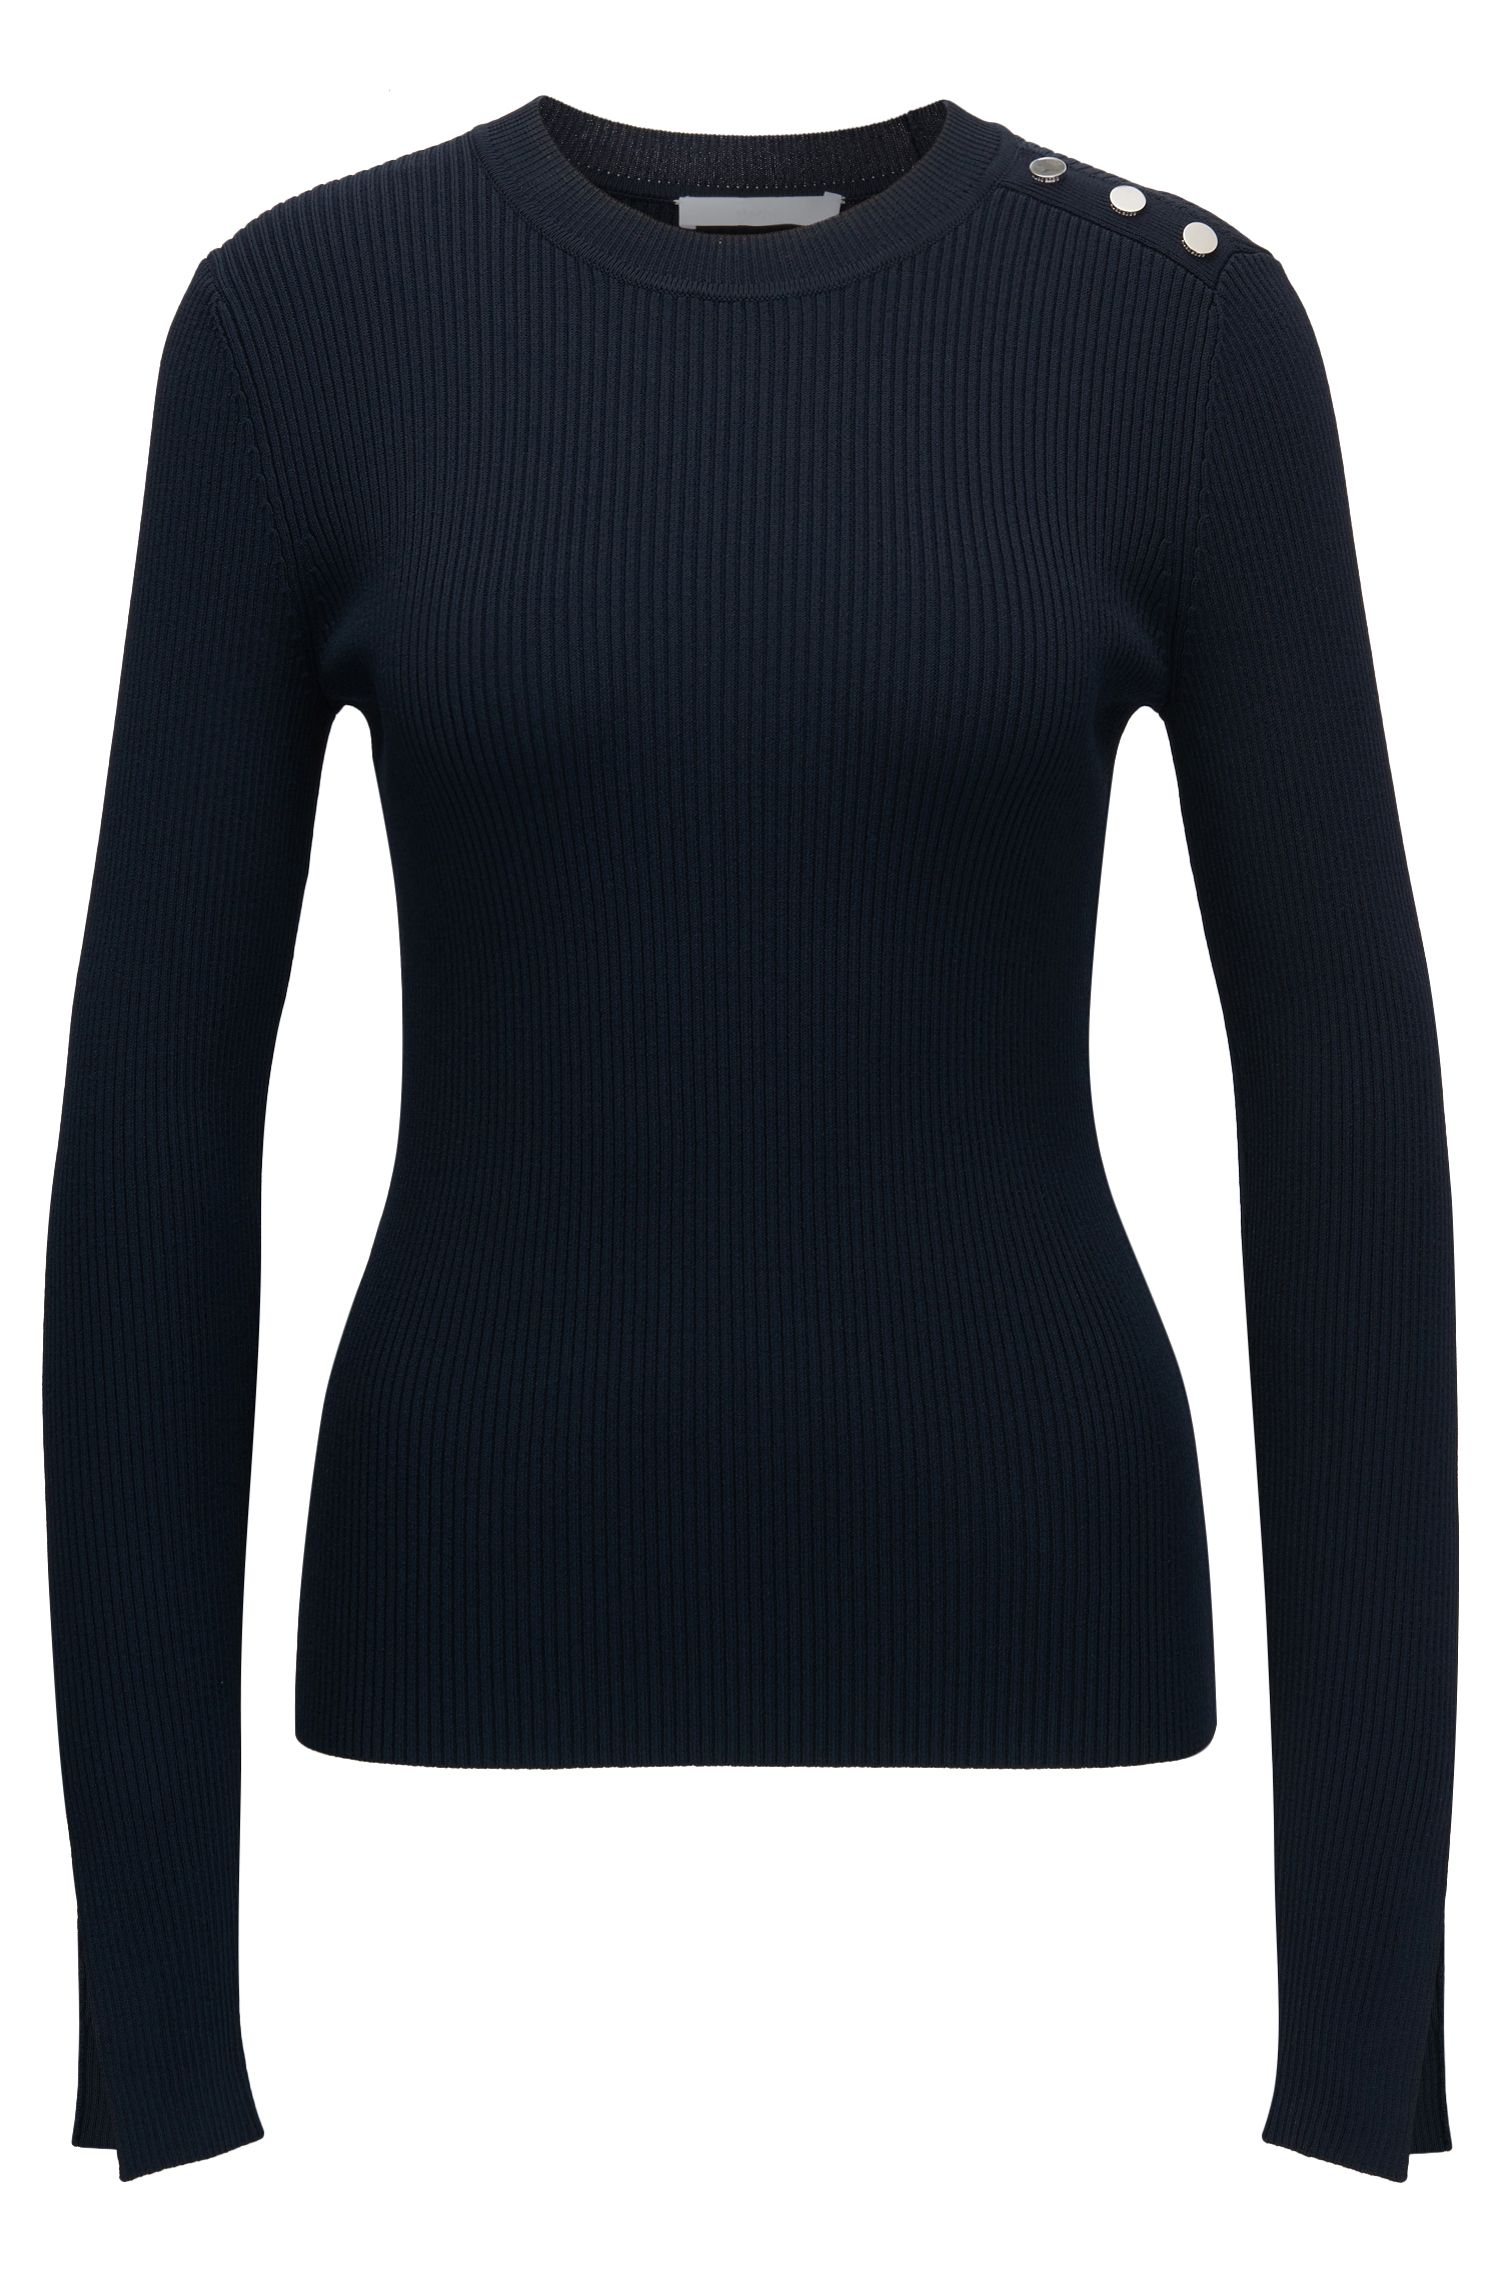 Ribbed crew-neck sweater with nautical button detail